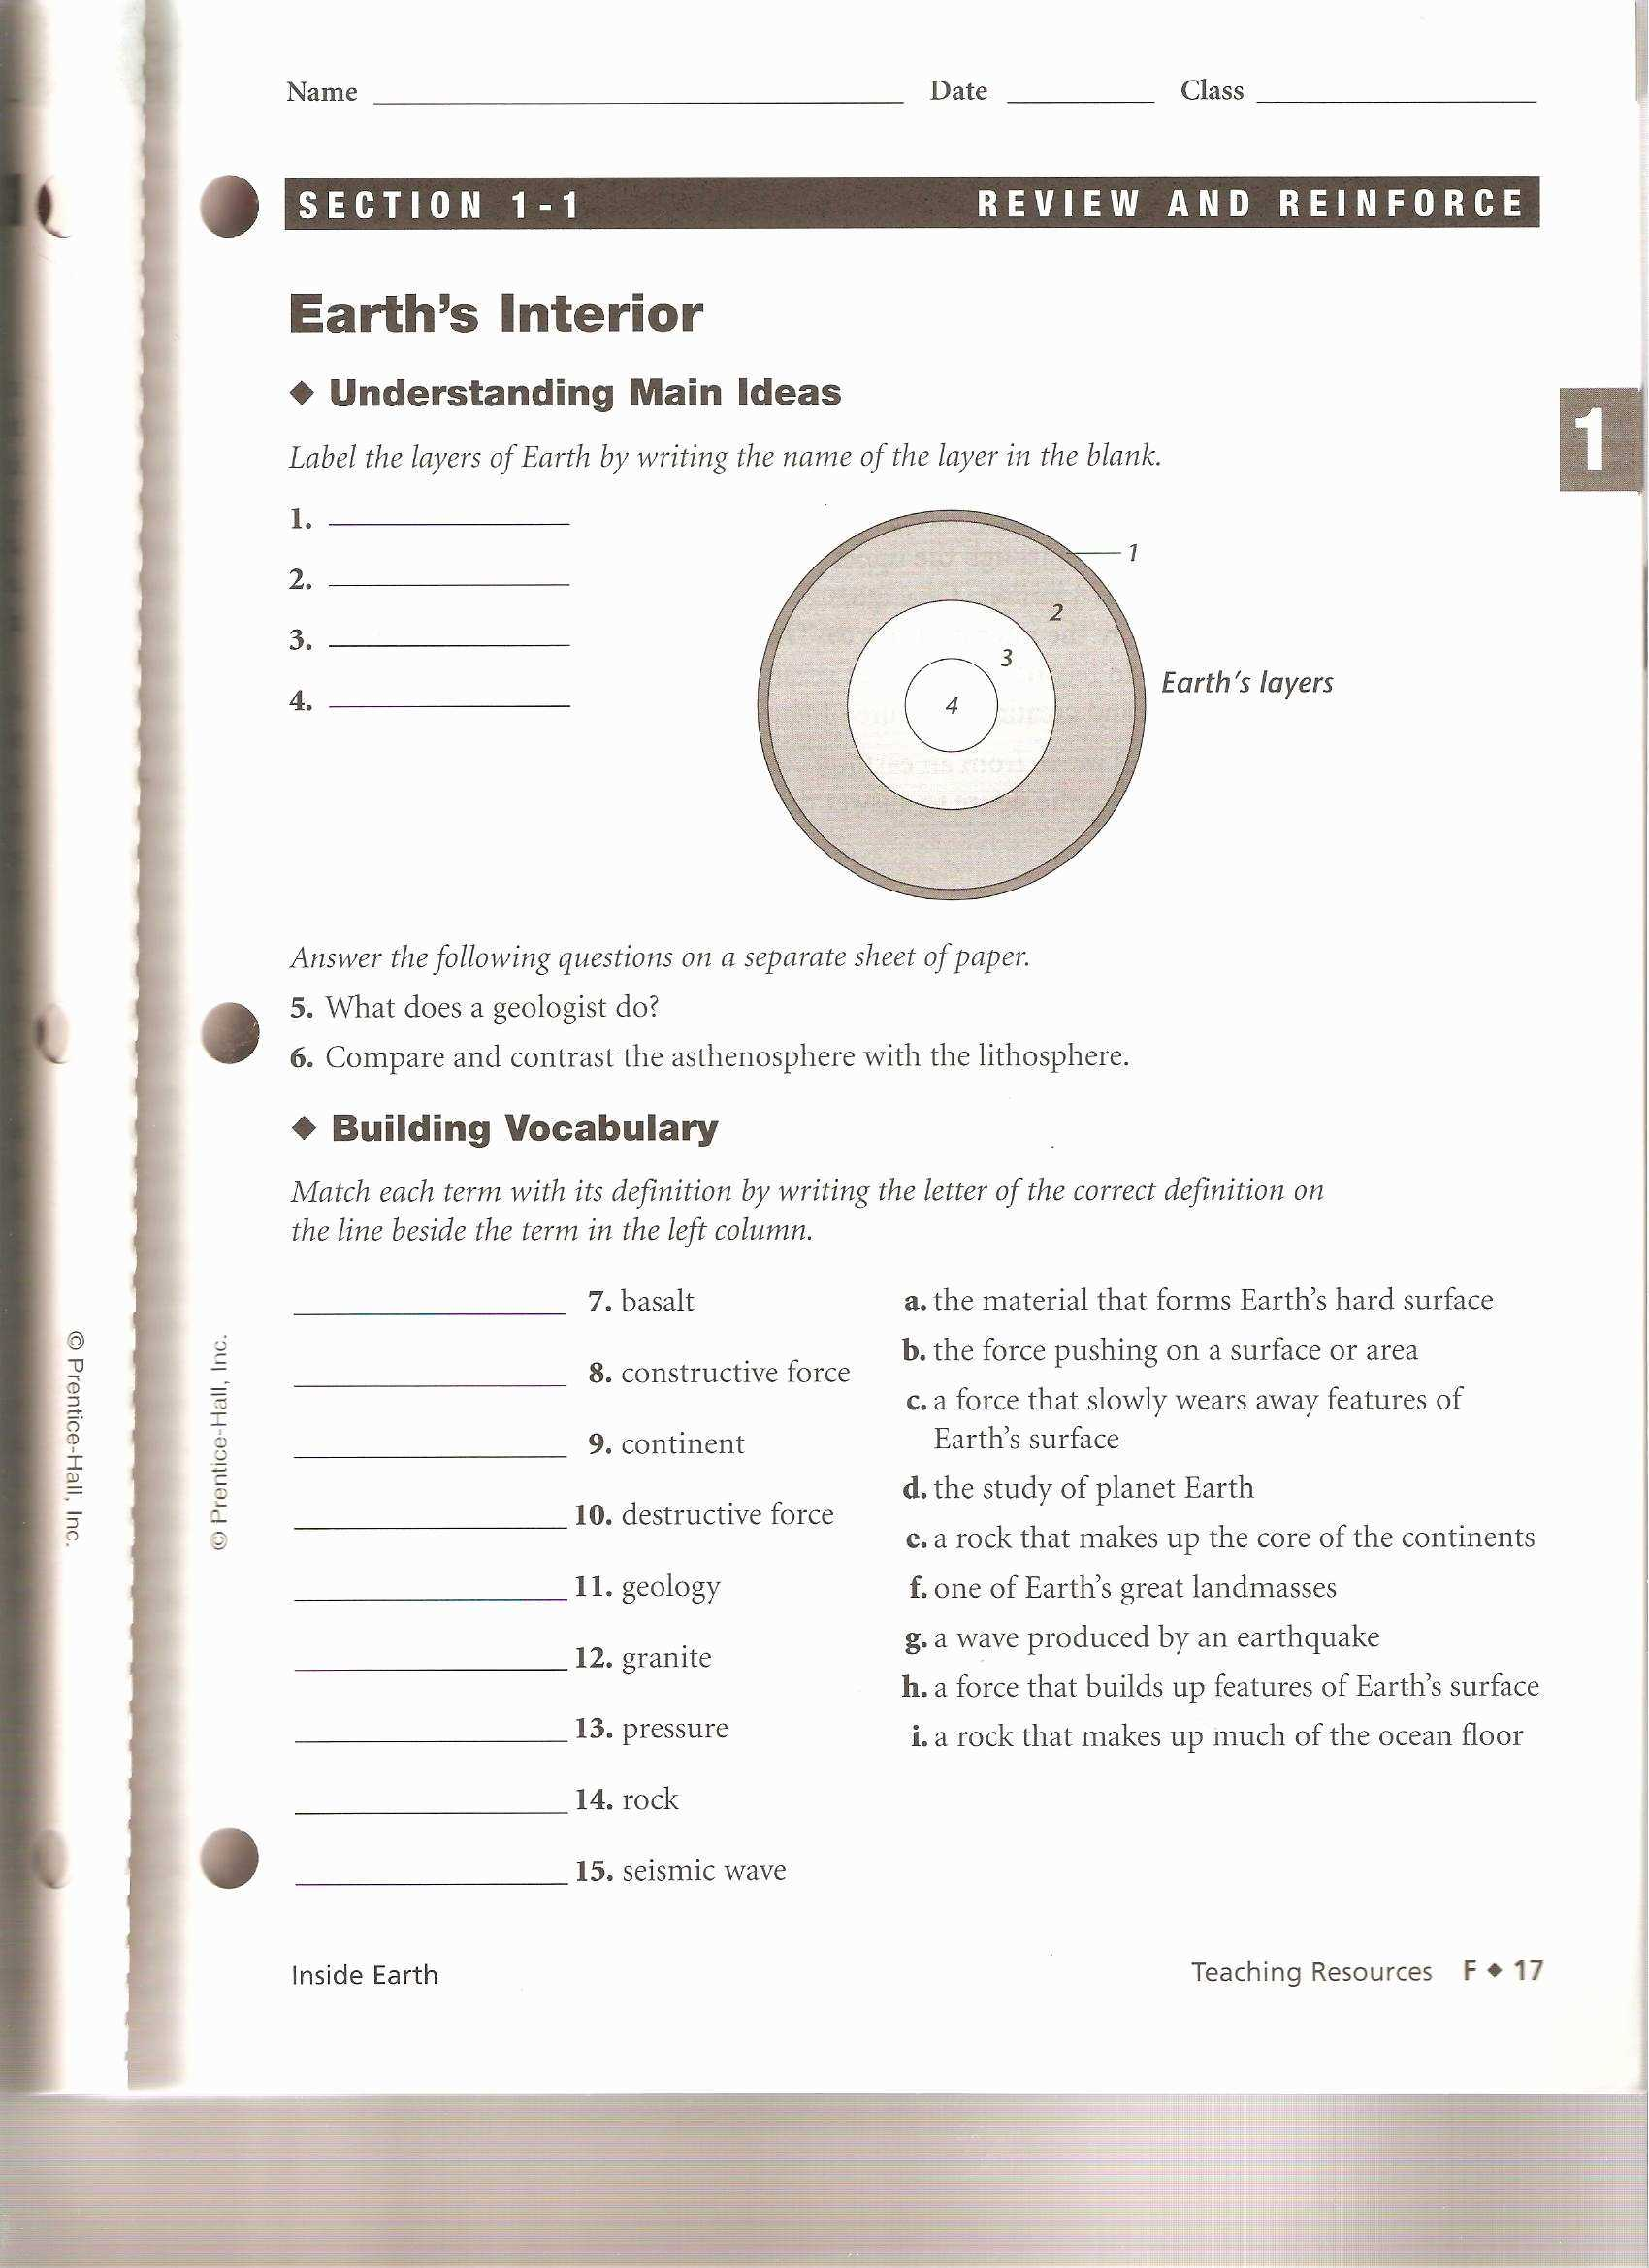 Pearson Education Inc Worksheet Answers Along with 15 Inspirational Answer Sheet for Math